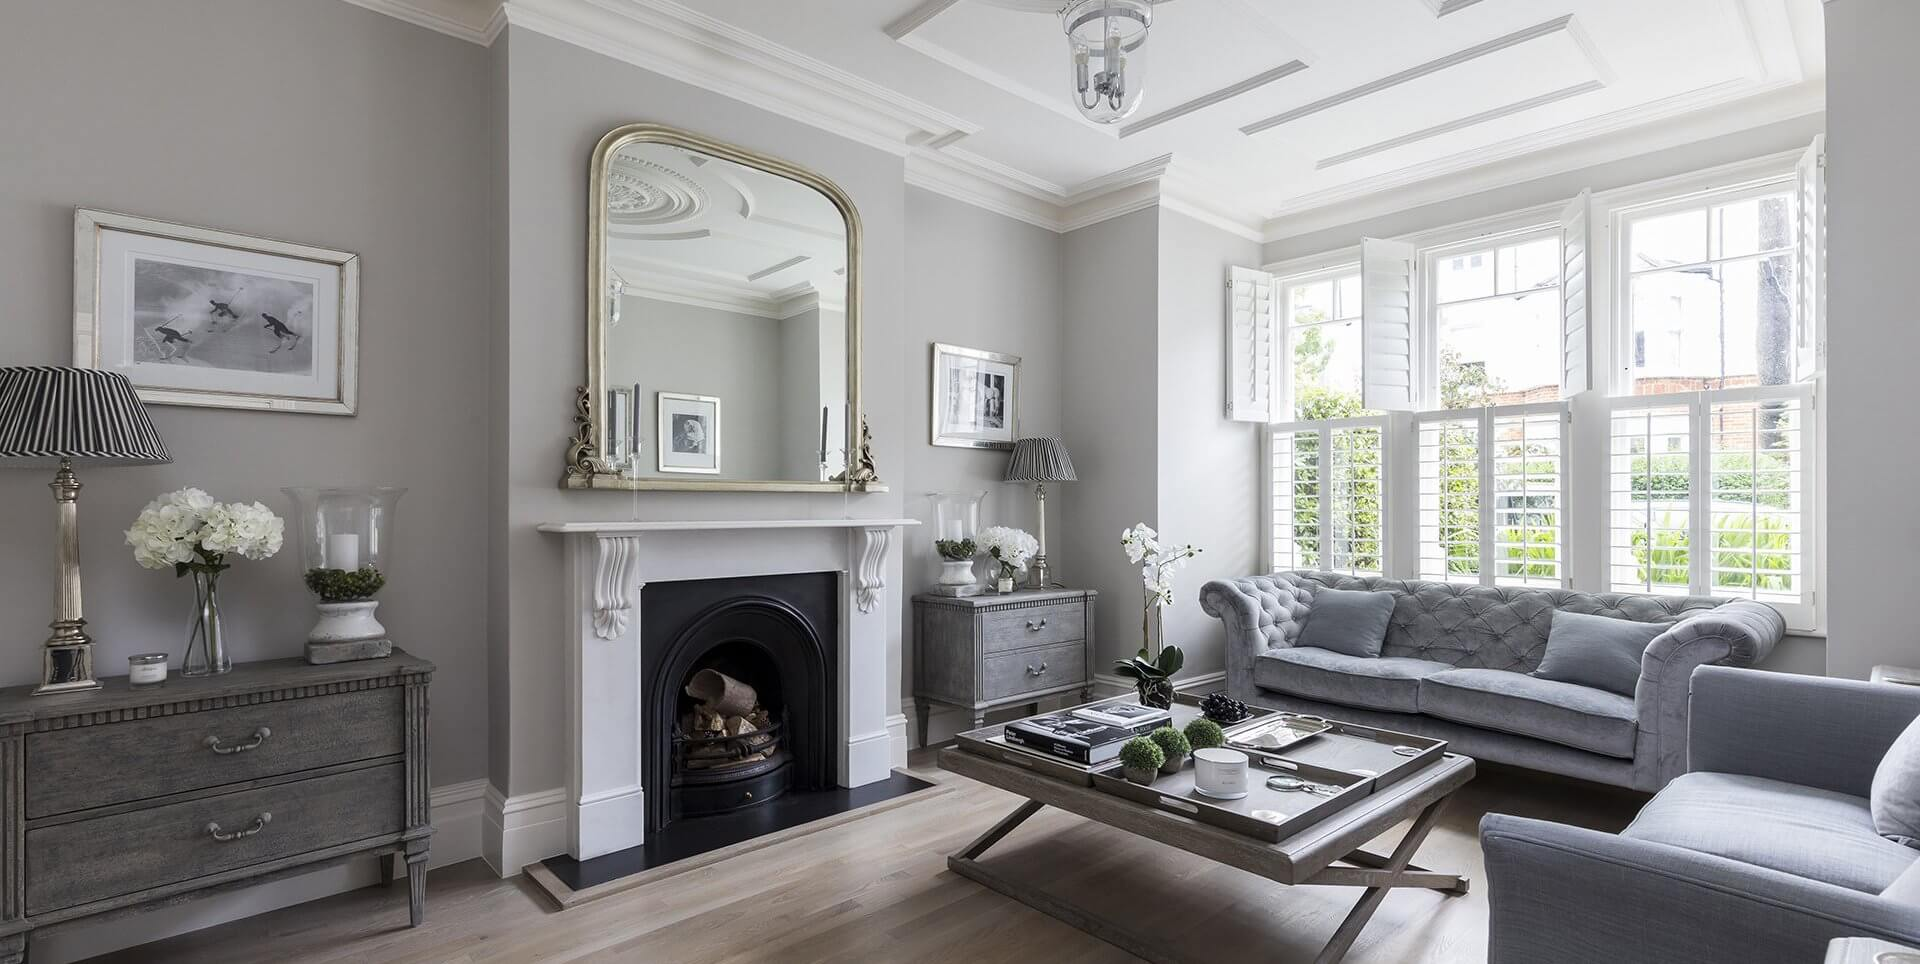 House Renovation London Refurbishment Contractors Proficiency,How Much To Give For A Wedding Gift Cash